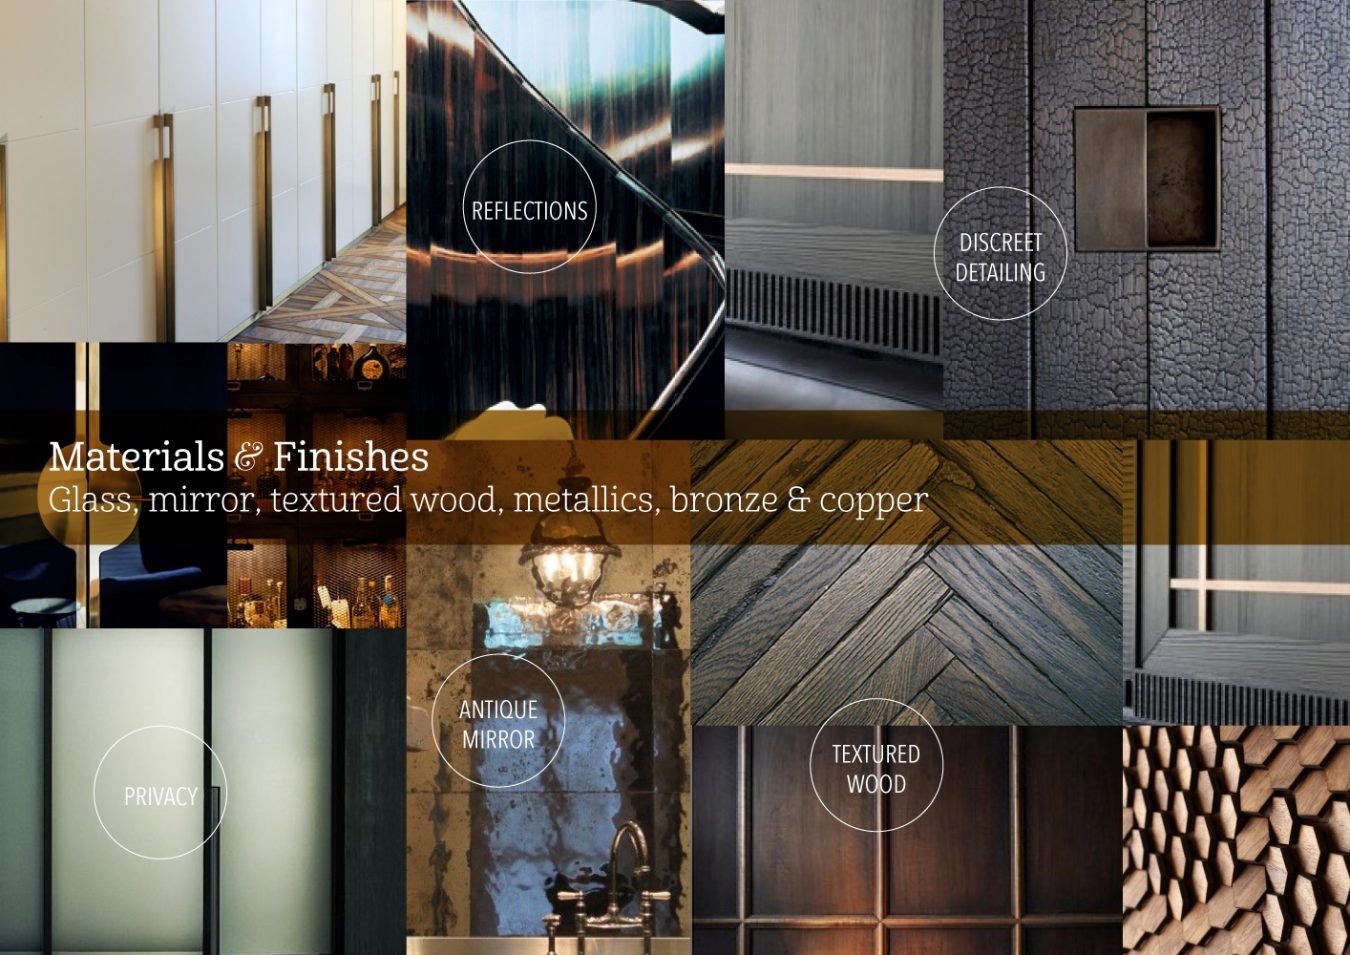 jjfox-harrods-materials-finishes